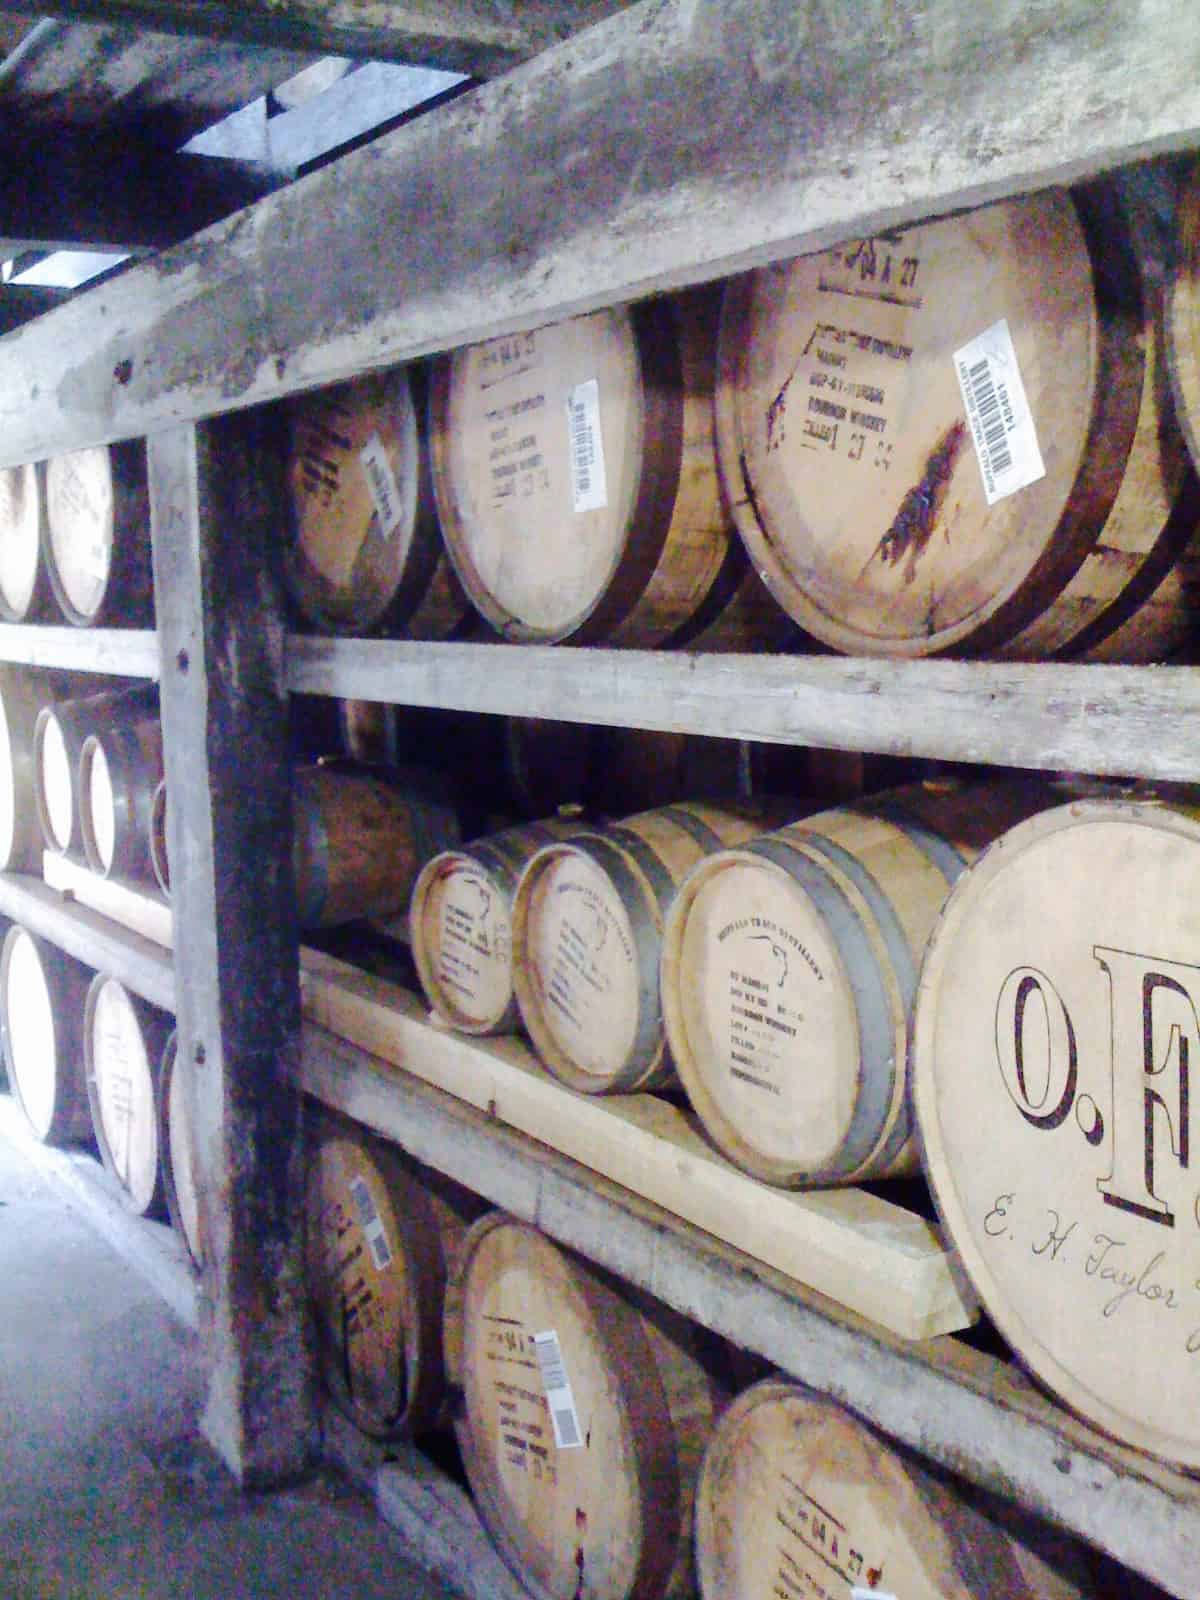 Whisky Erfurt Whisky Archives Crowdfund Insider